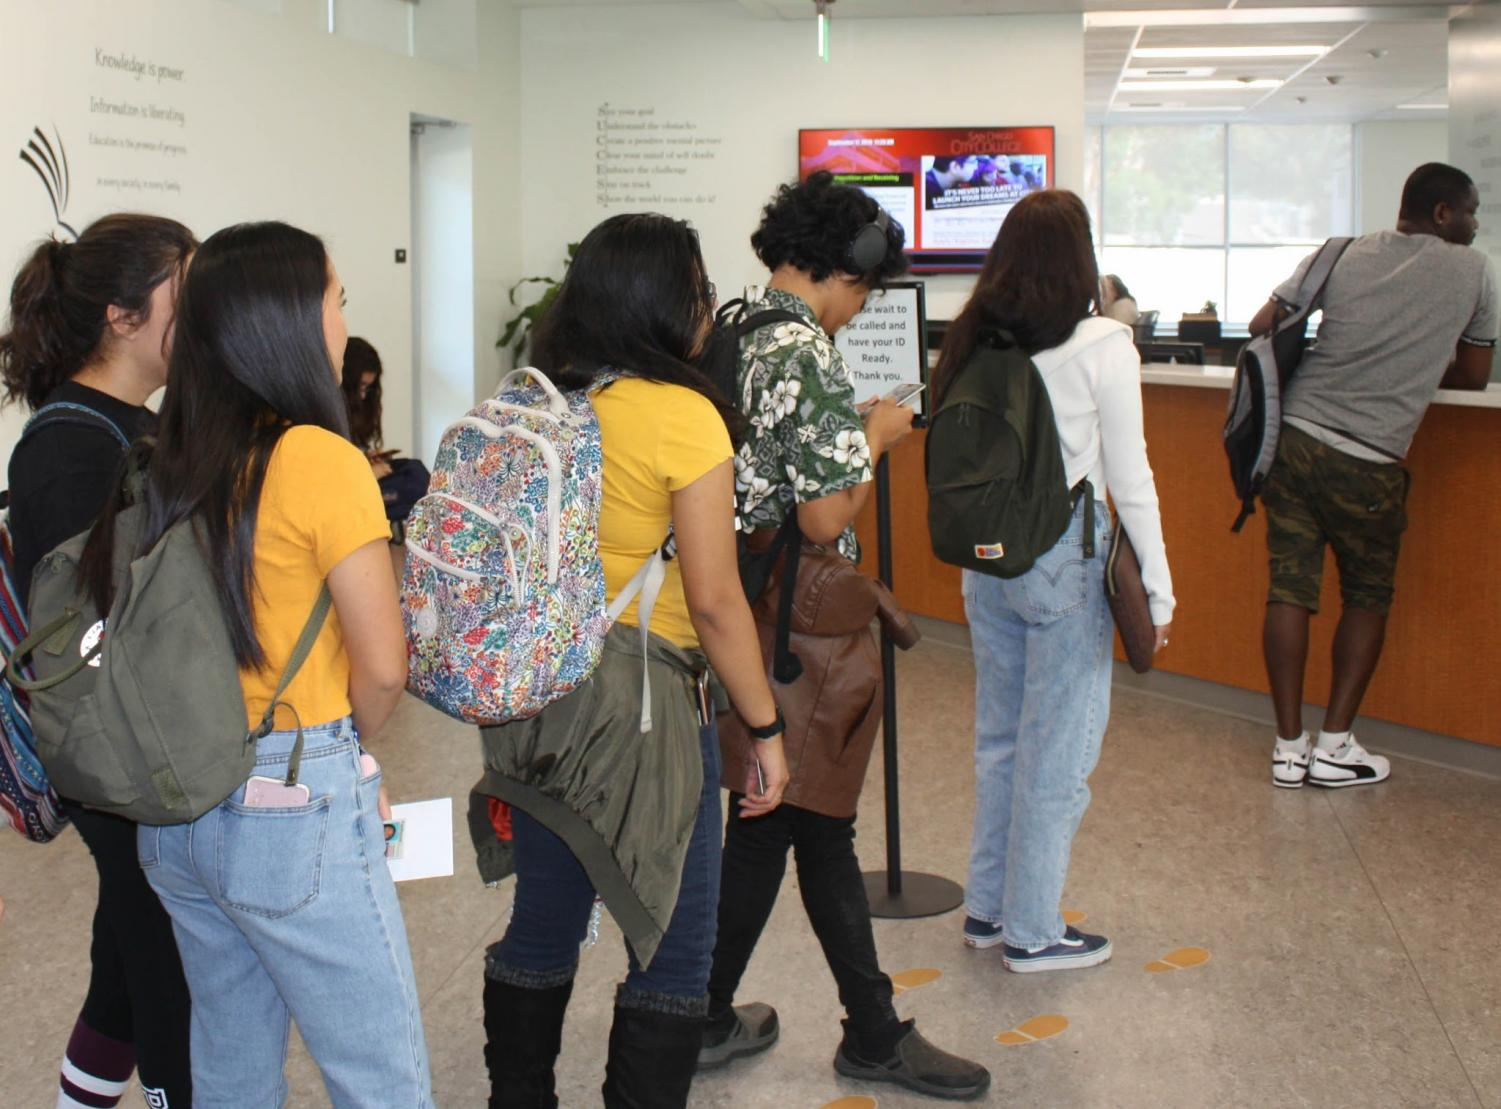 Students with questions regarding financial aid are encouraged to visit the Financial Aid Office. Photo by Aurora Ruvalcaba